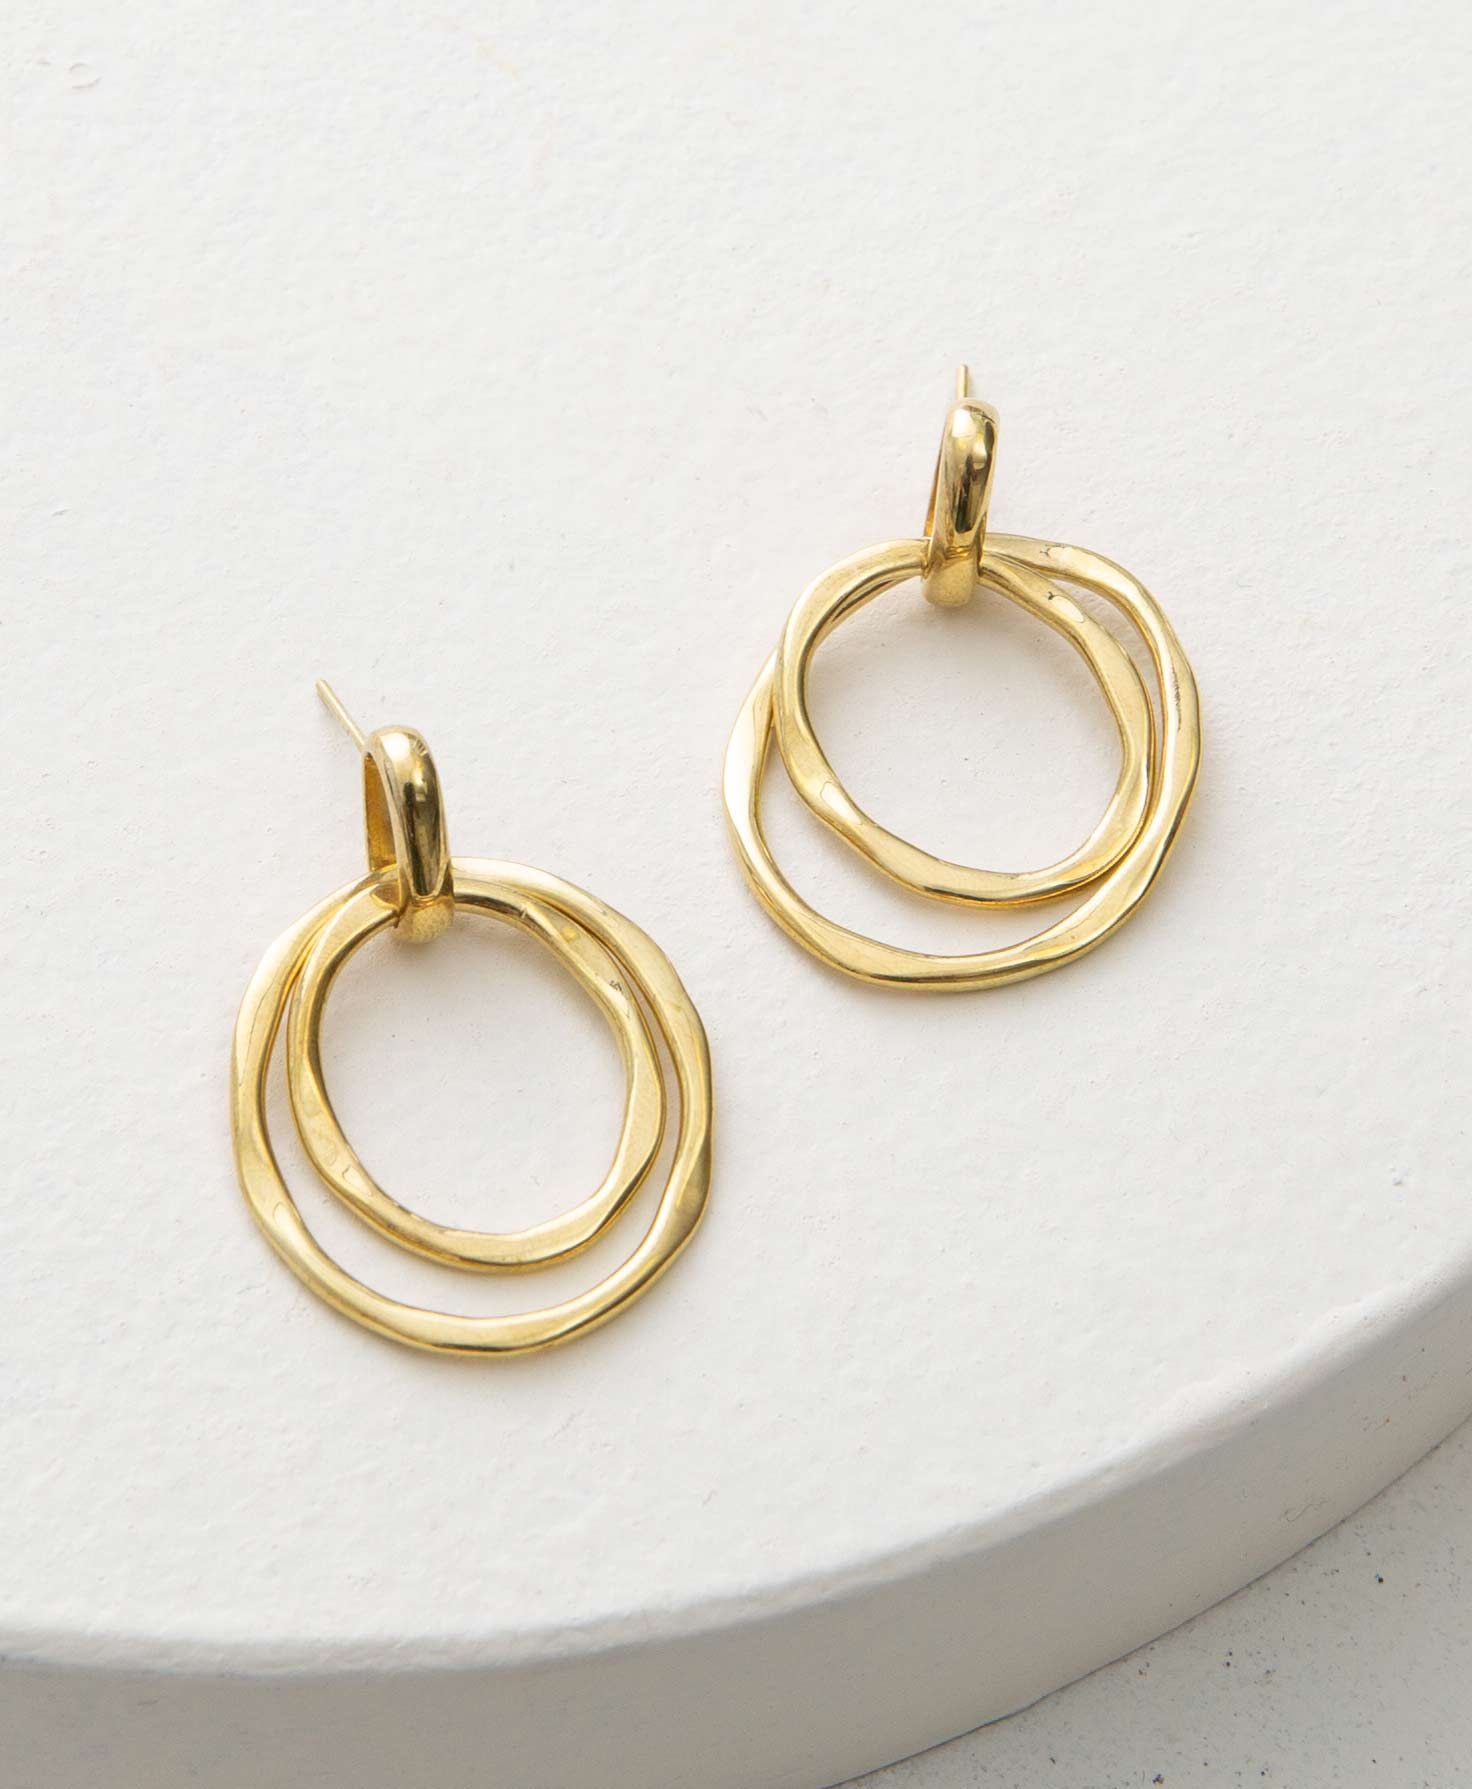 The Wild Link Earrings sit on a white block. They are post-style earrings made of shiny gold plated brass. Connected to the post is a brass loop. Hanging down from this loop is a brass hoop with a smaller brass hoop nested inside it. The hoops have an organic, hammered texture.